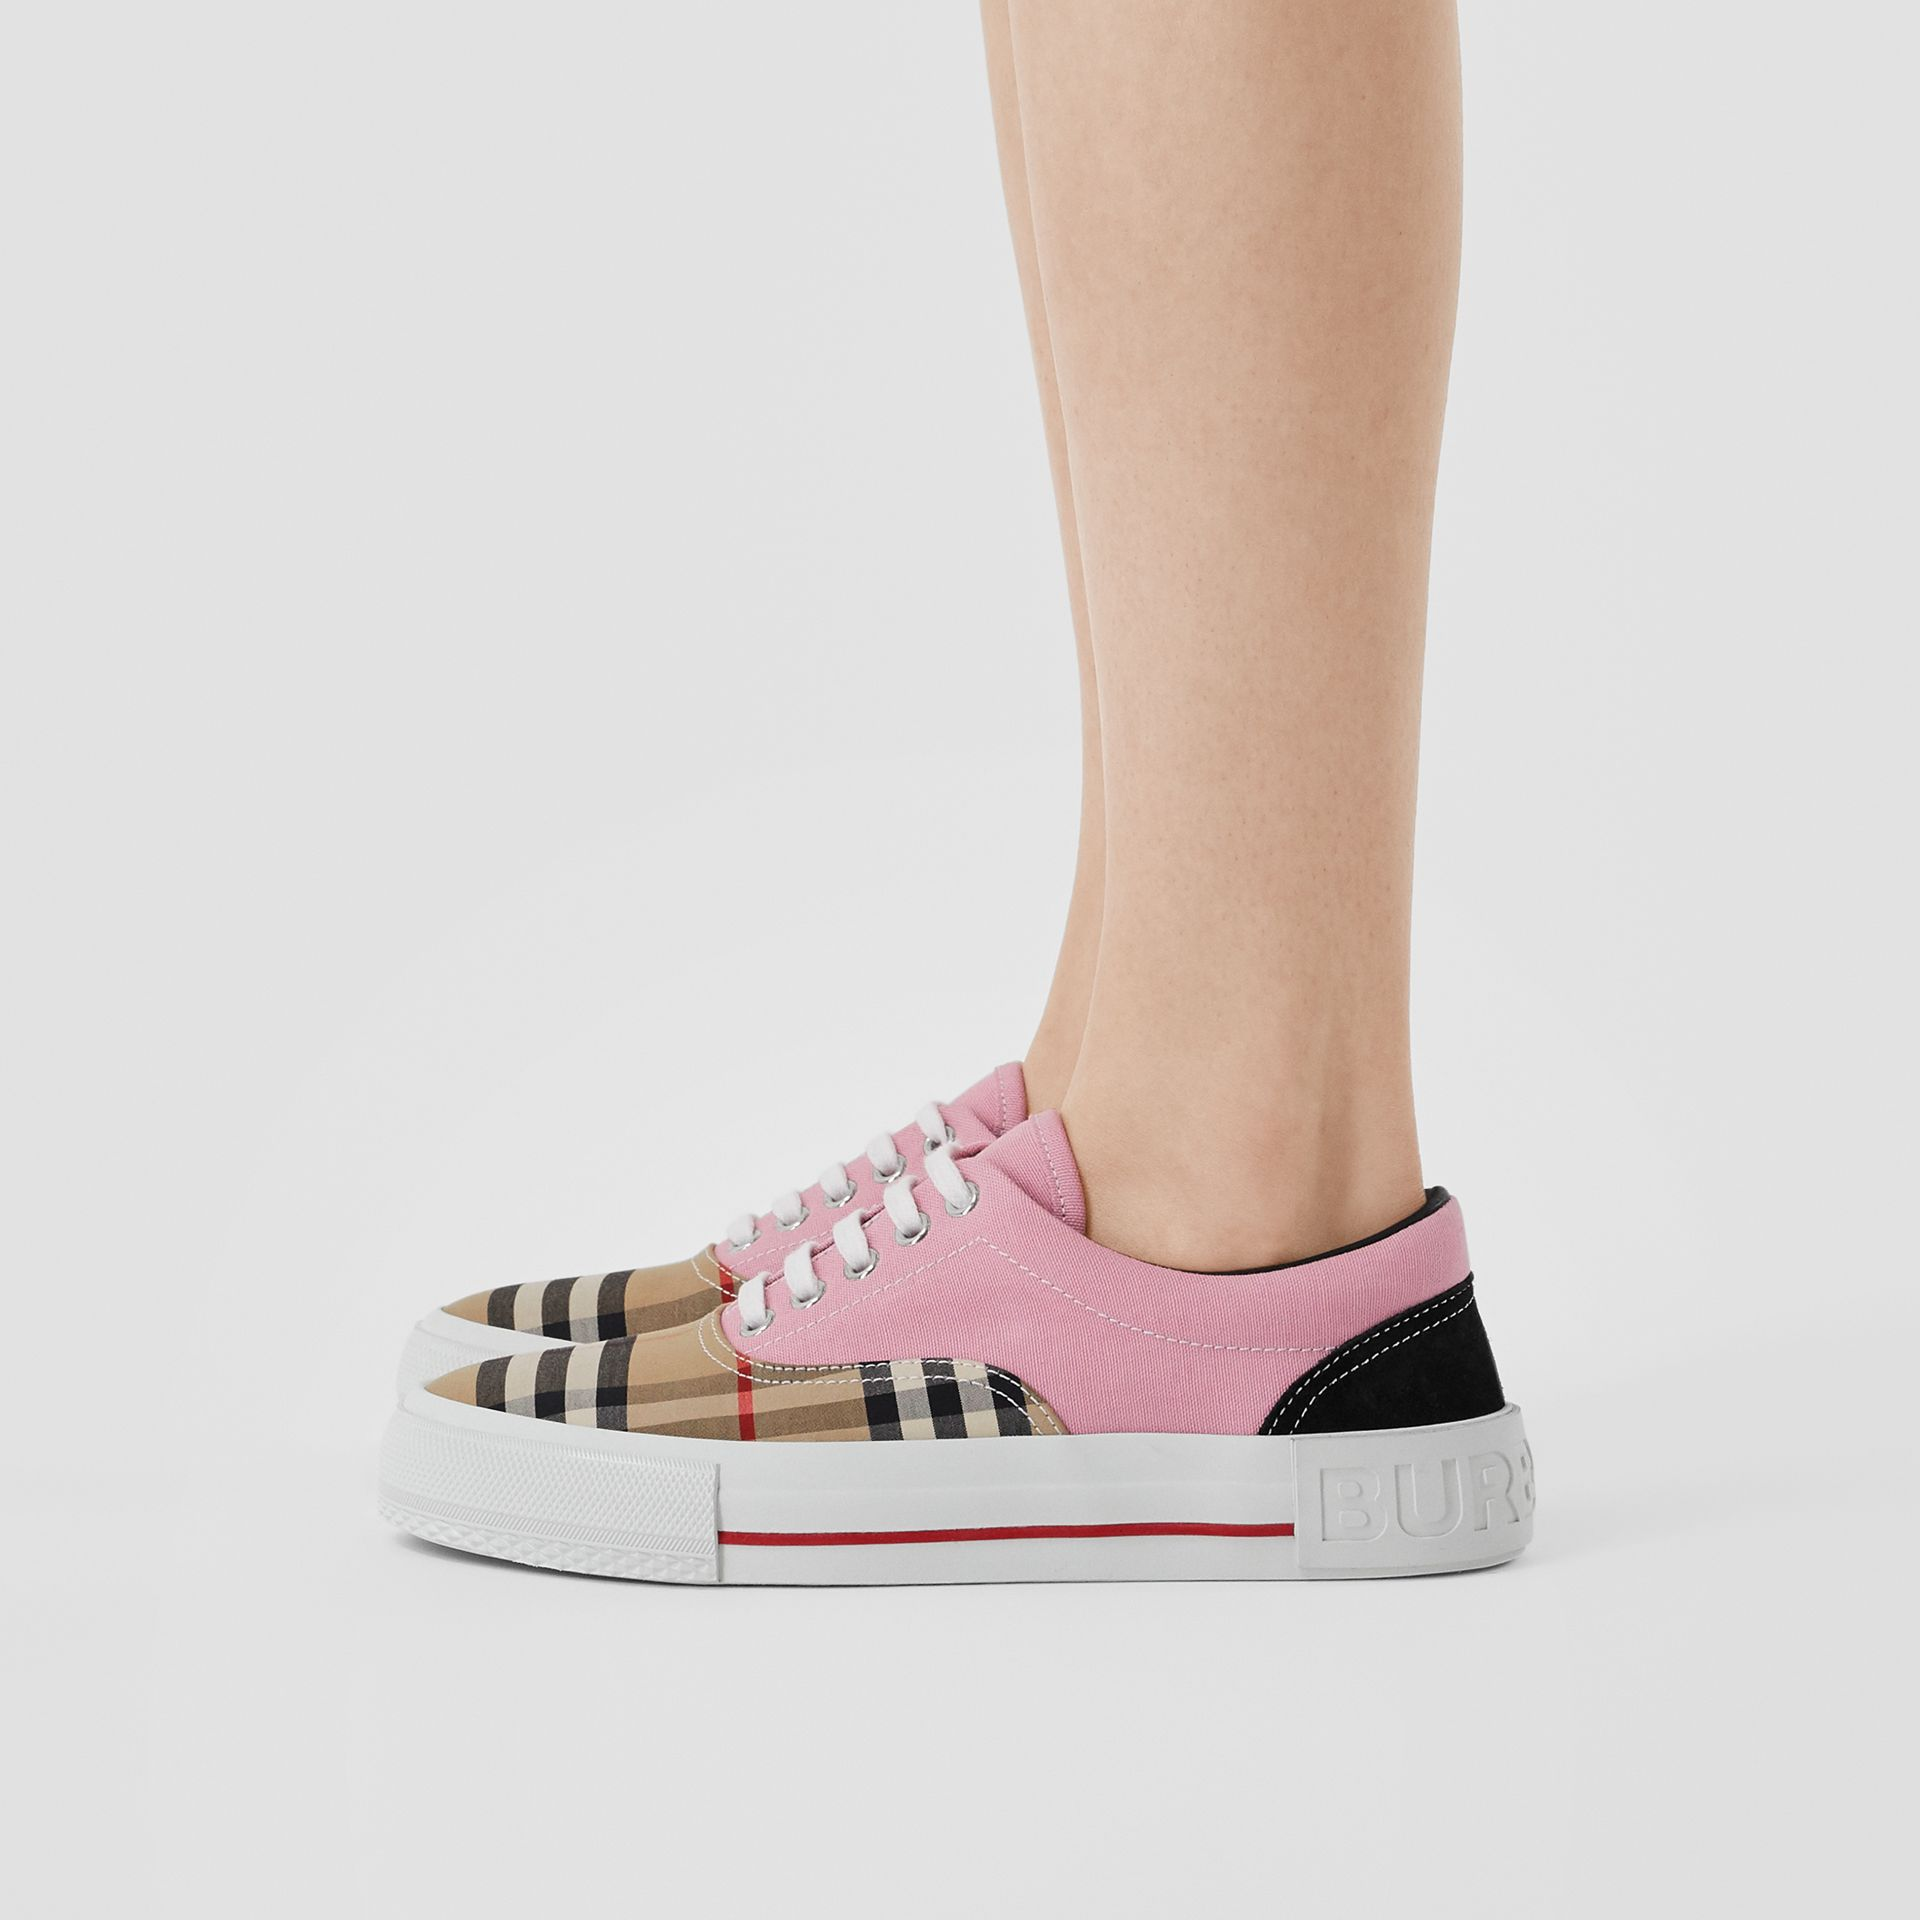 Vintage Check, Cotton Canvas and Suede Sneakers in Archive Beige/pink - Women | Burberry - gallery image 2